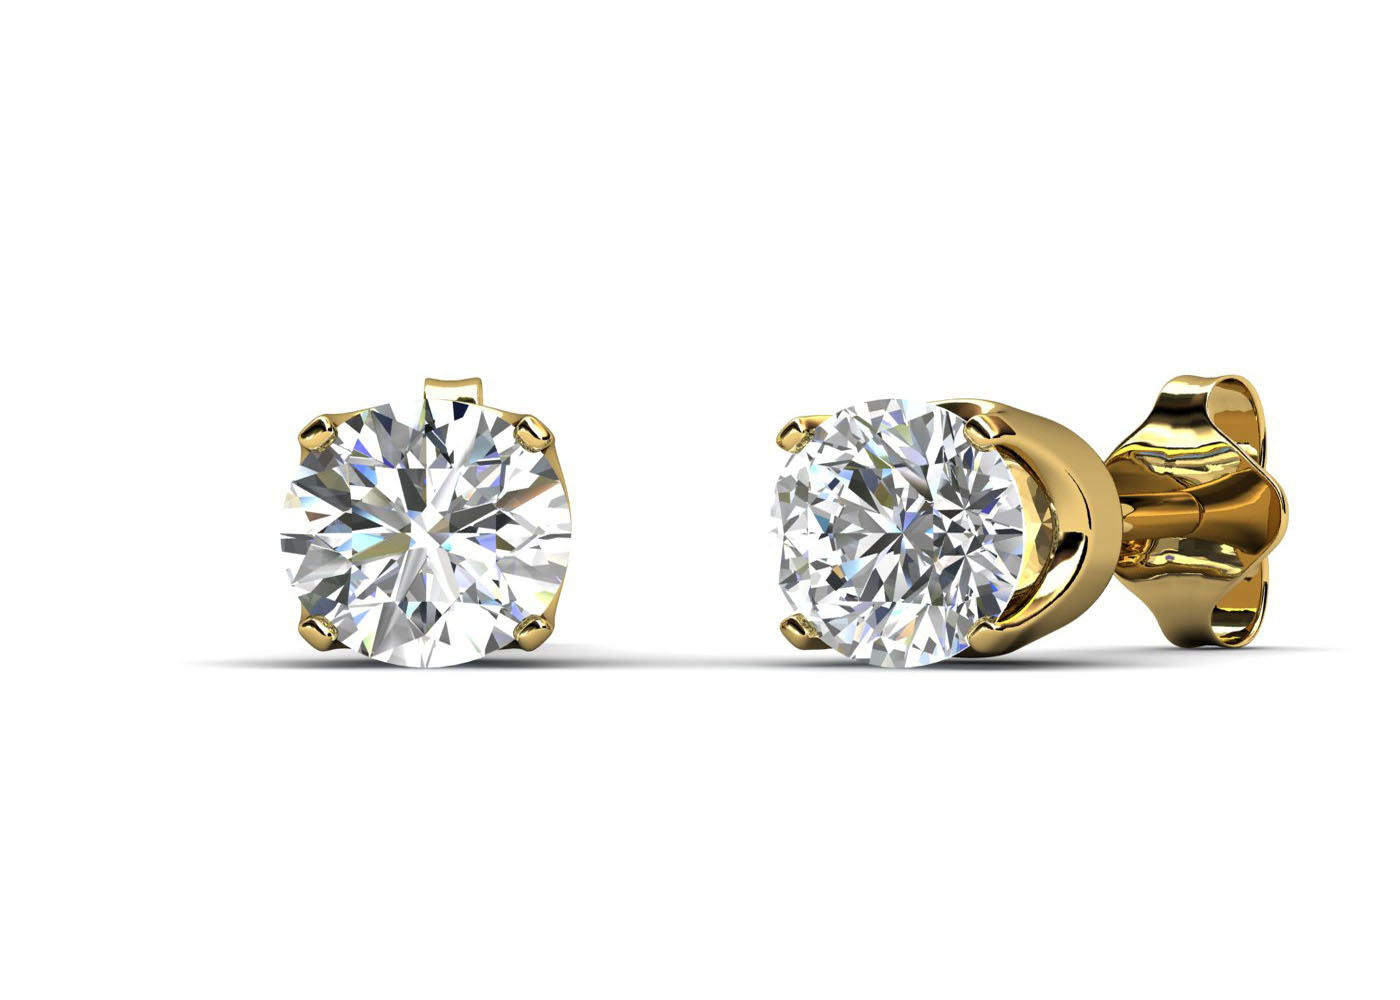 9ct Yellow Gold Claw Set Diamond Earrings 0.33 Carats - Image 3 of 4